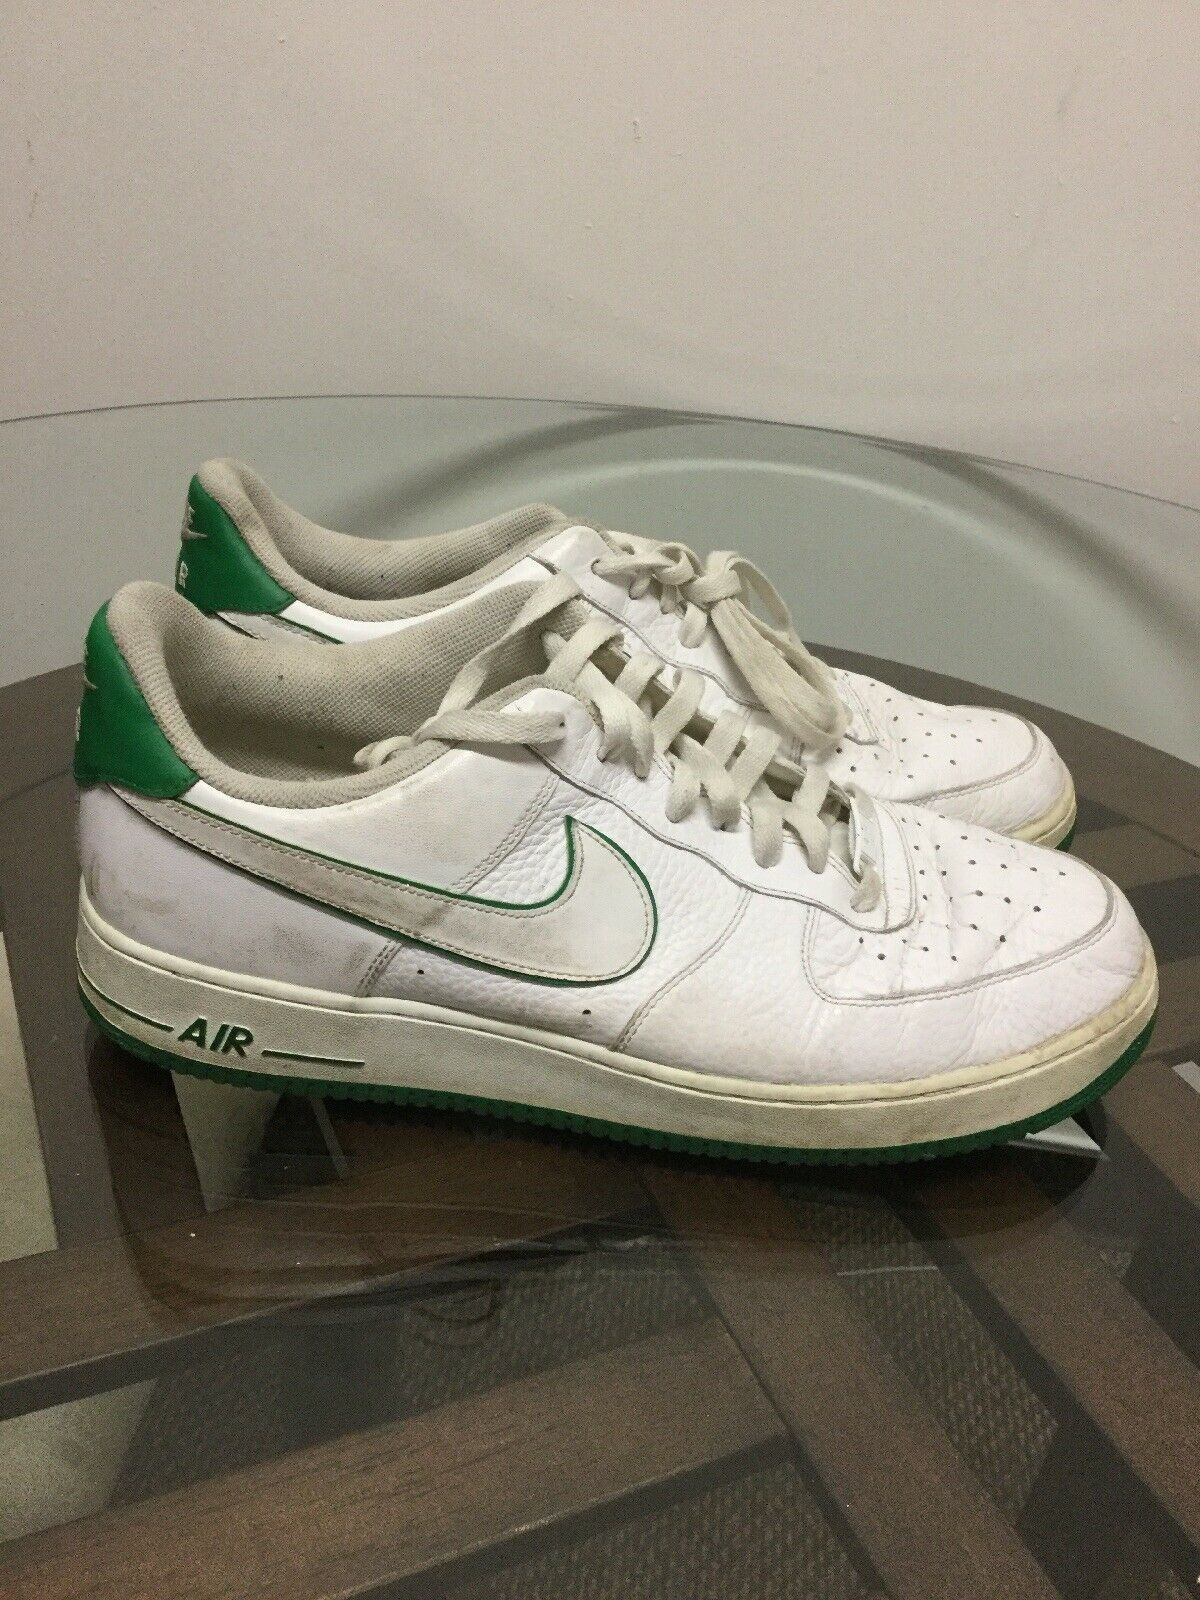 "Nike Air Force 1 Mens Size 14 ""White Gorge Green  488298-102 Leather shoes"